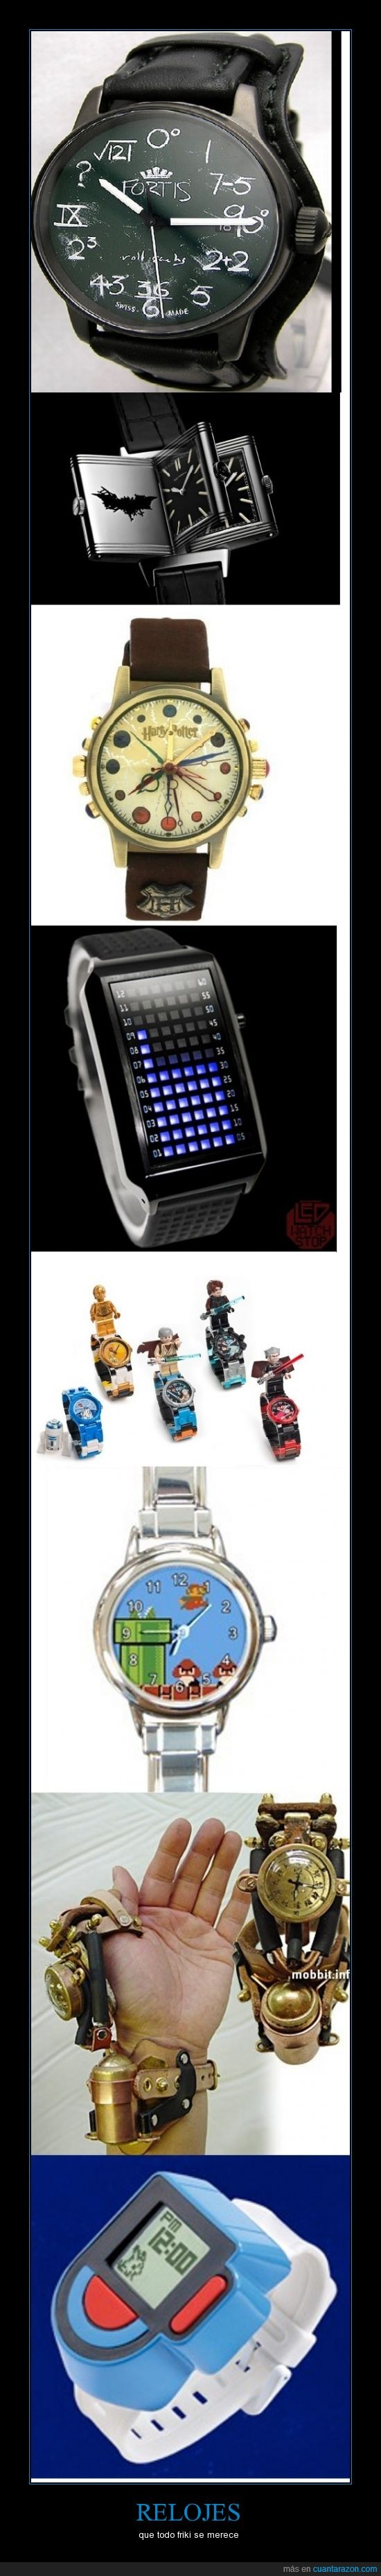 batman,frki,harry poterr,lego,matematicas,relojes,star wars